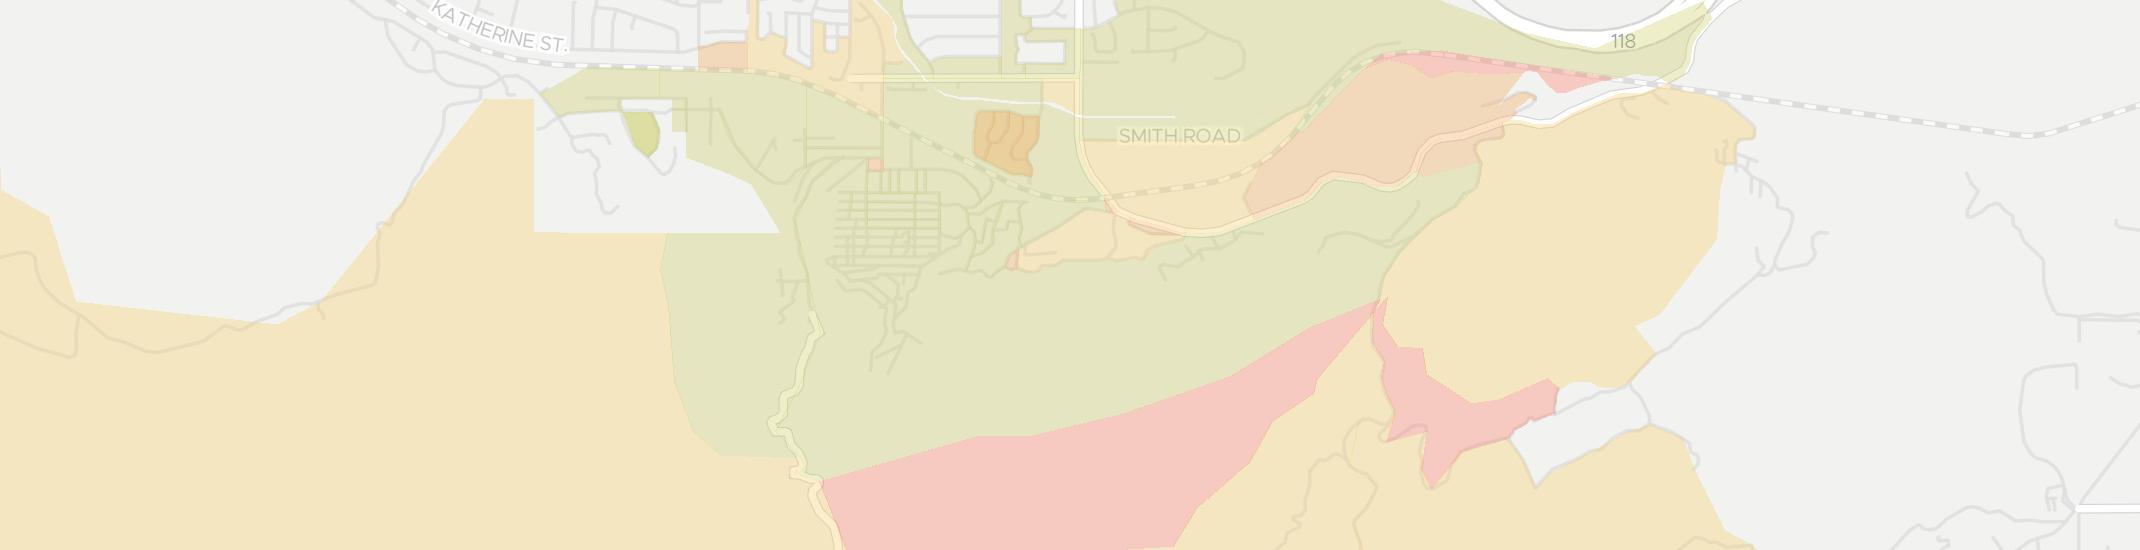 Santa Susana Internet Competition Map. Click for interactive map.